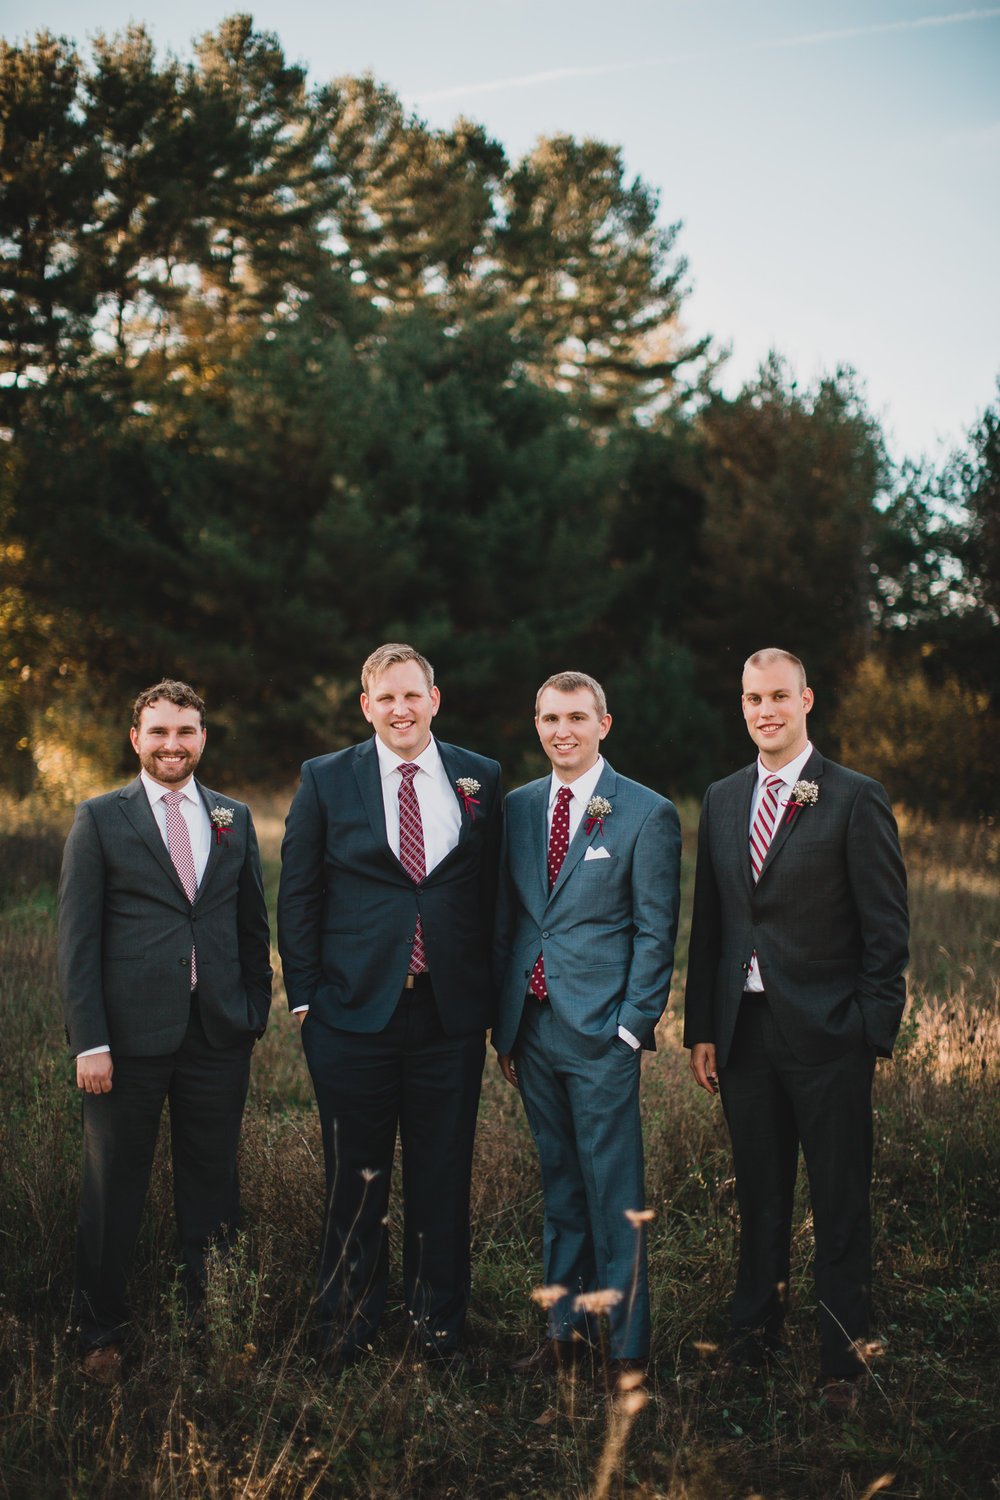 Fall Wedding, Mismatched Grey Suits